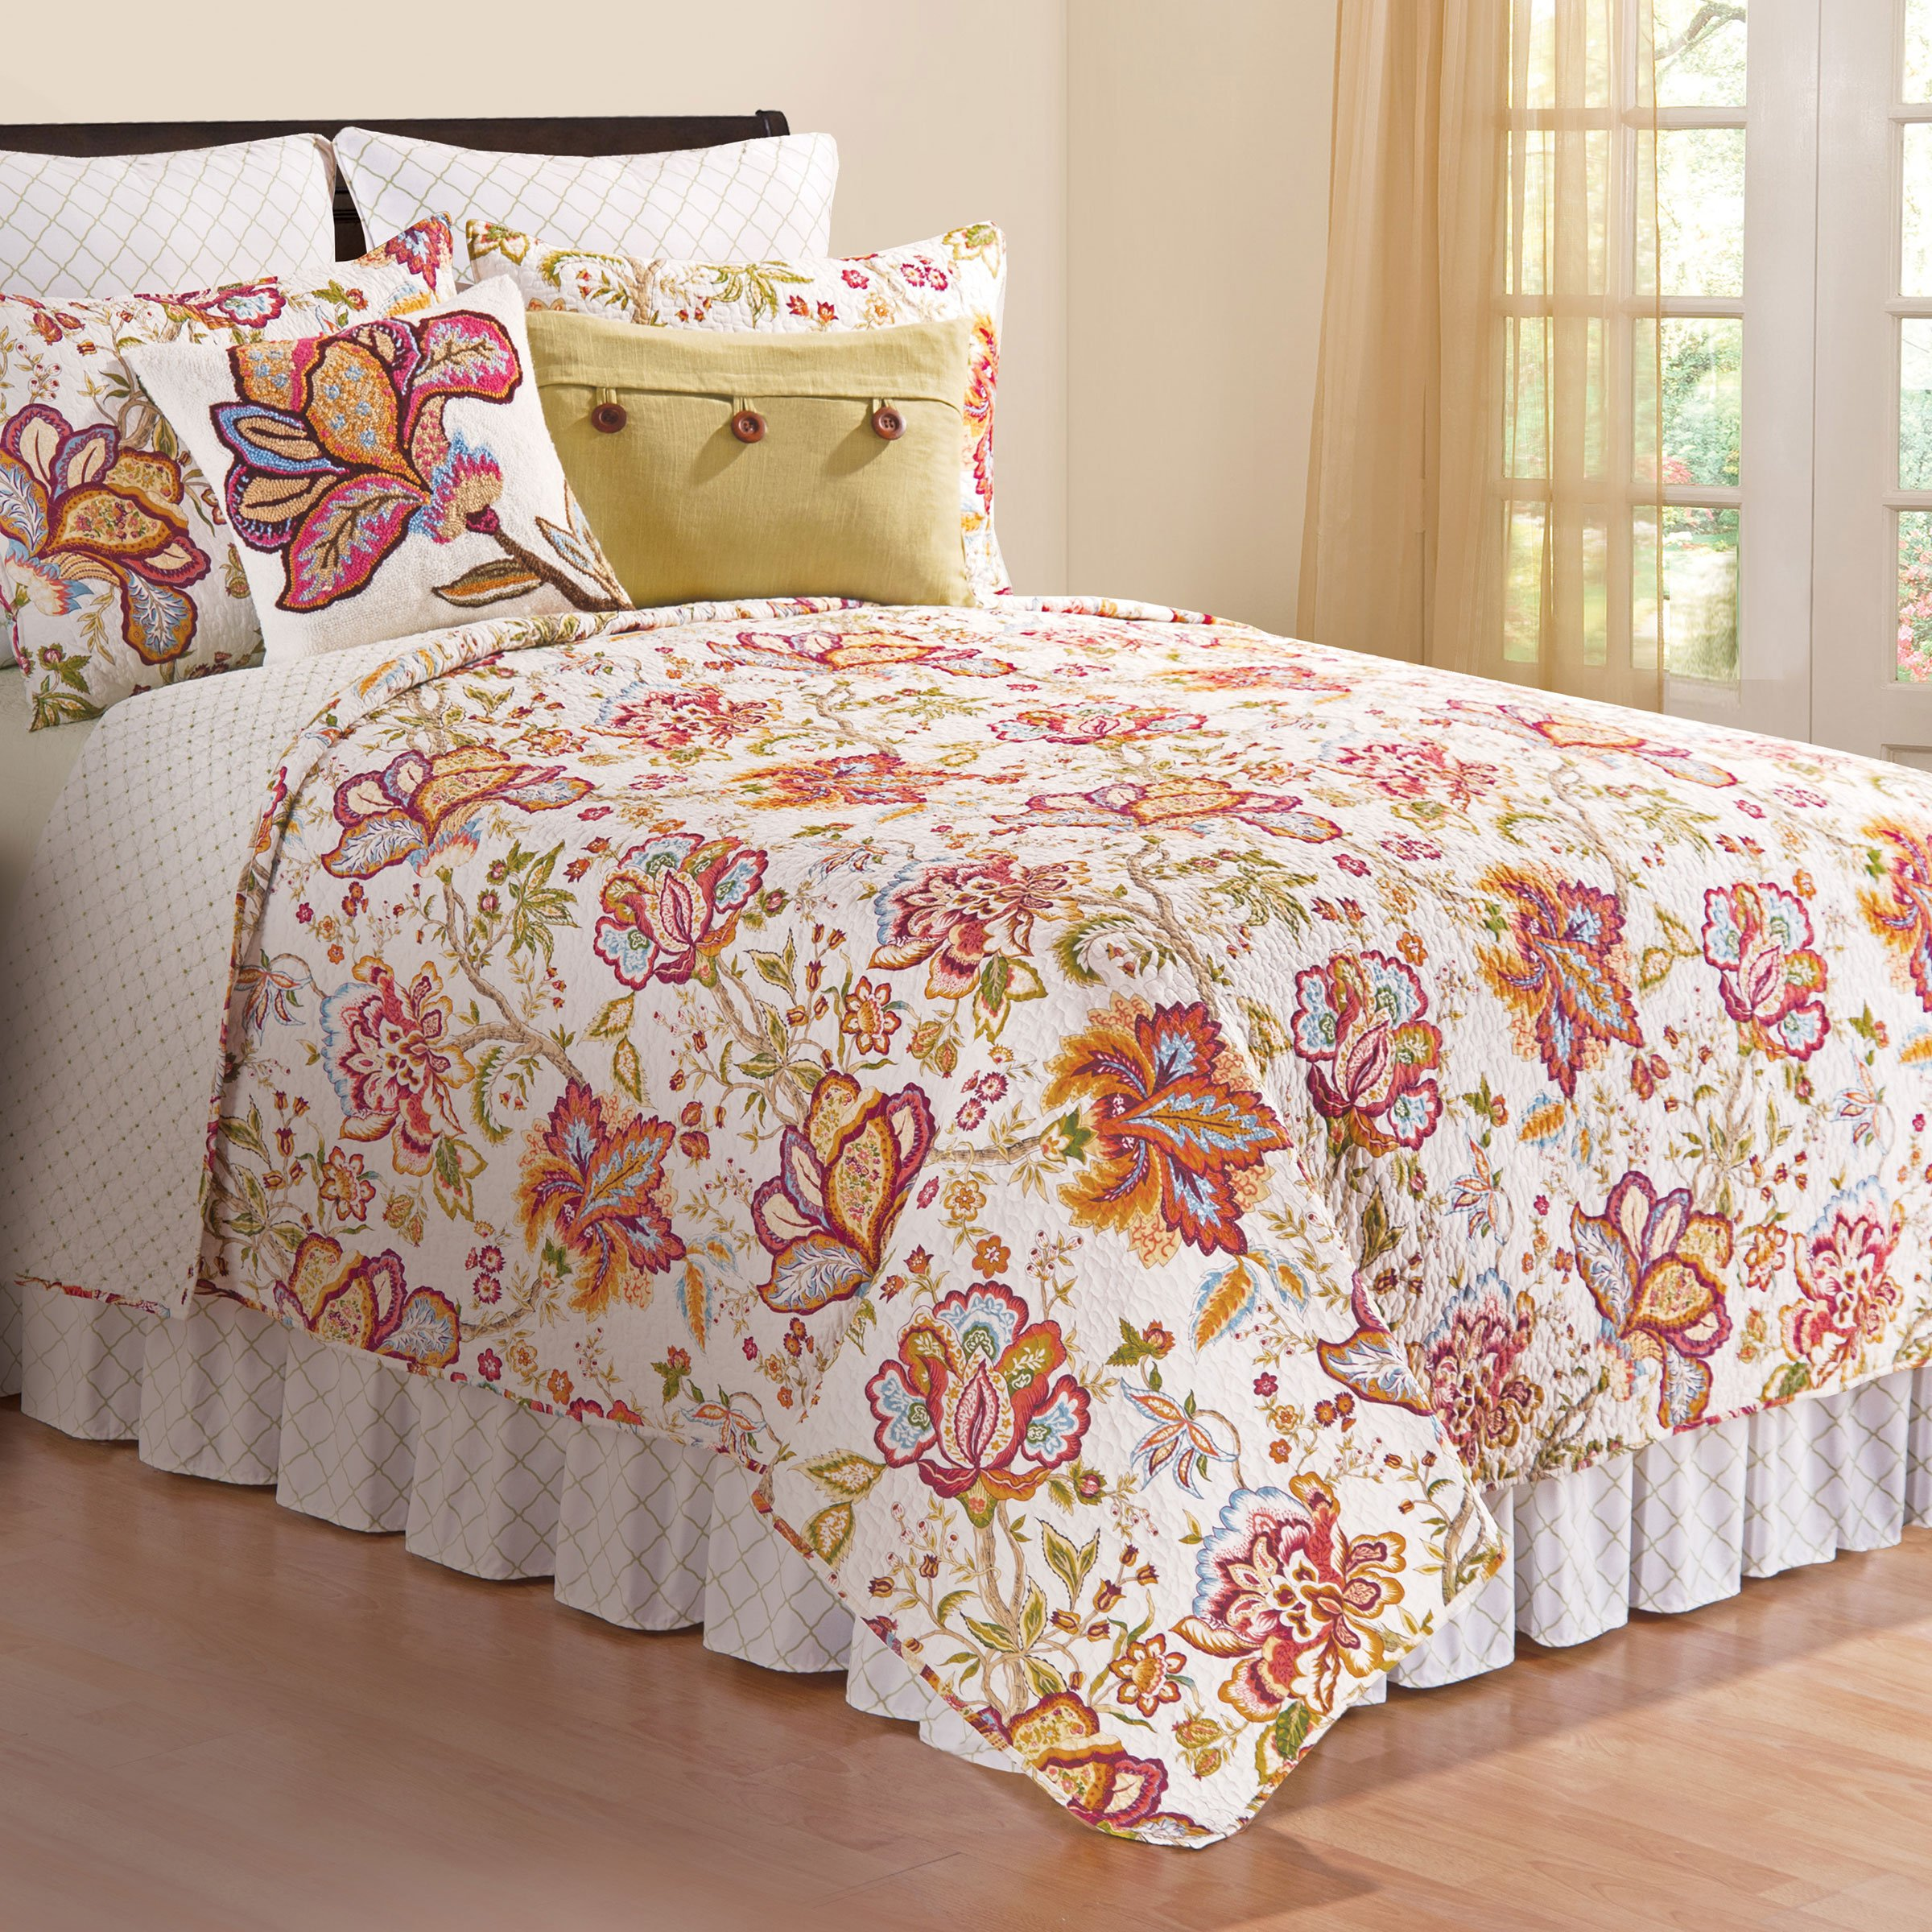 Bethany Floral Reversible 3 Pc. Quilt Set (Queen) by C&F Home